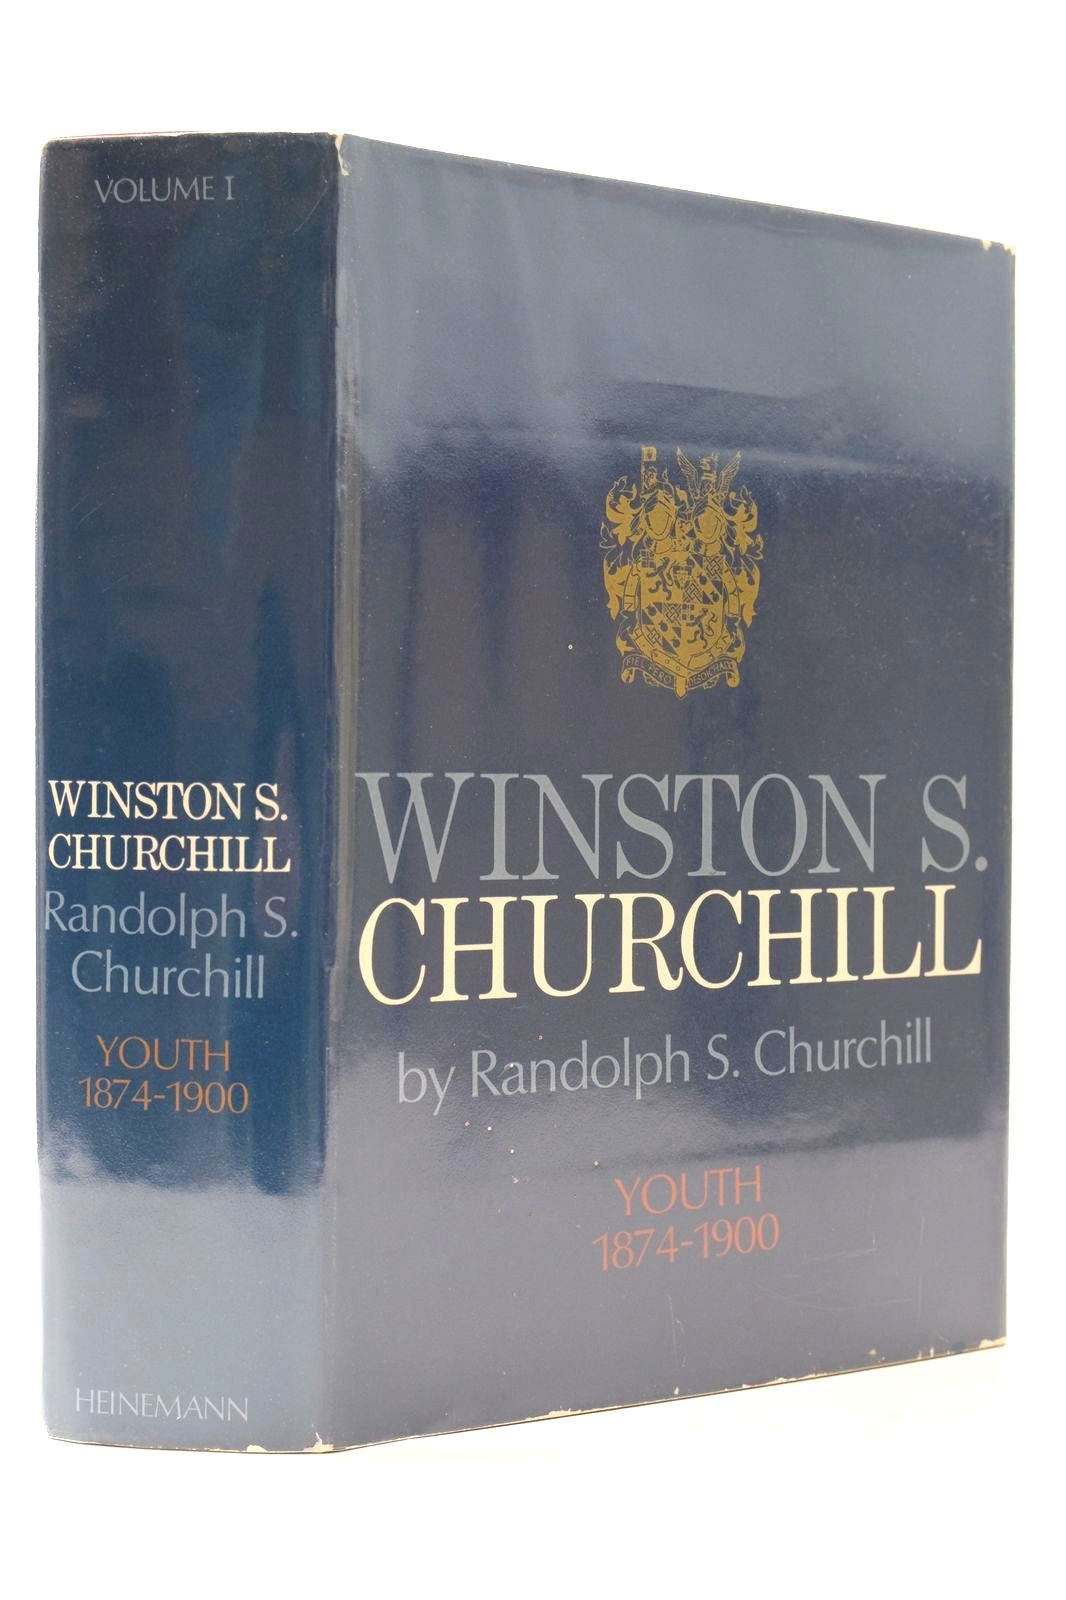 Photo of WINSTON S. CHURCHILL VOLUME I YOUTH 1874-1900- Stock Number: 2132683